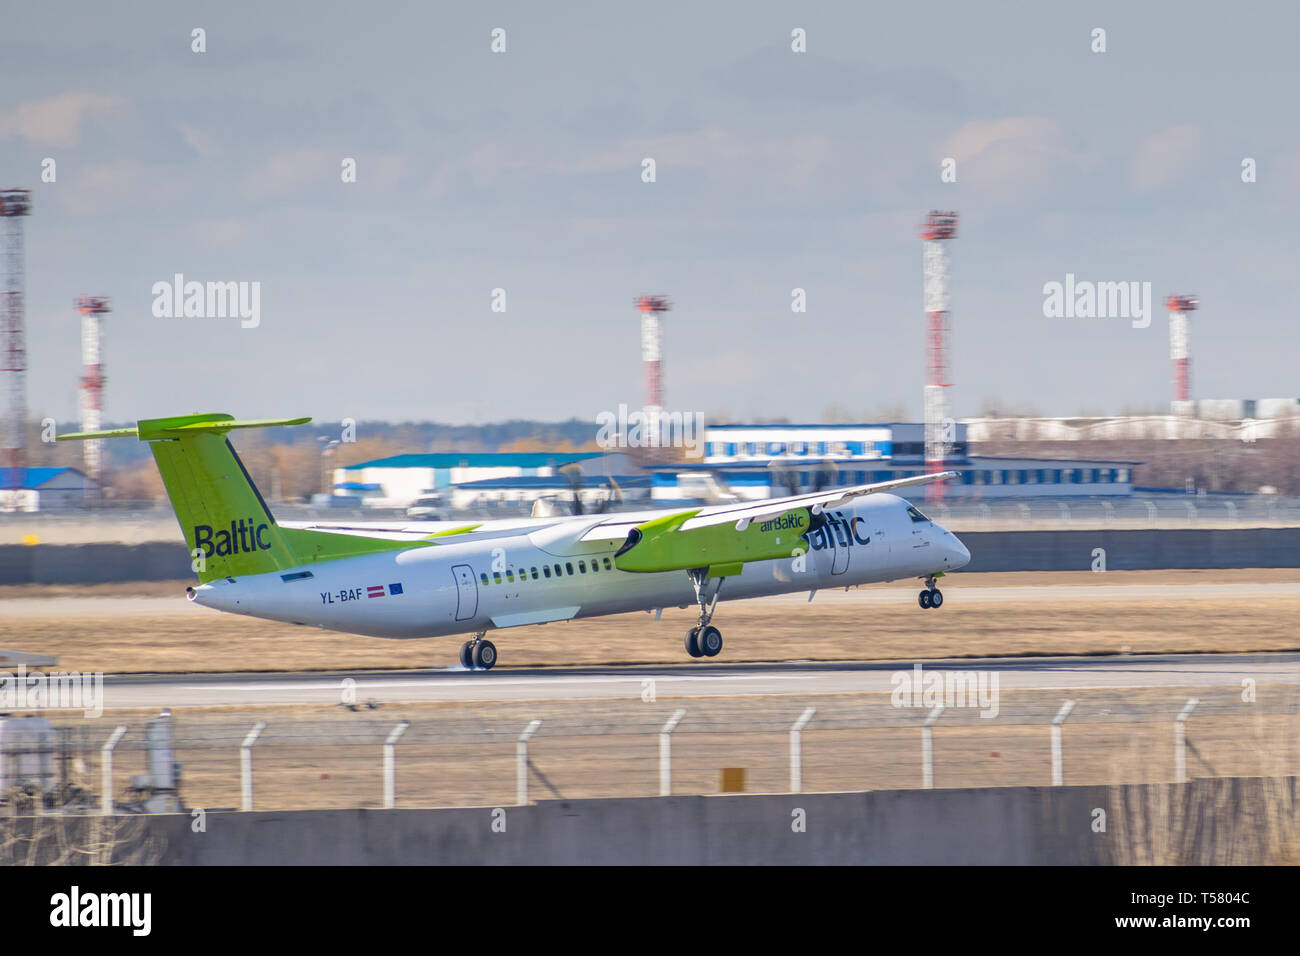 Kyiv, Ukraine - March 17, 2019: Air Baltic De Havilland Canada DHC-8-400 taxiing to the runway in the airport - Stock Image